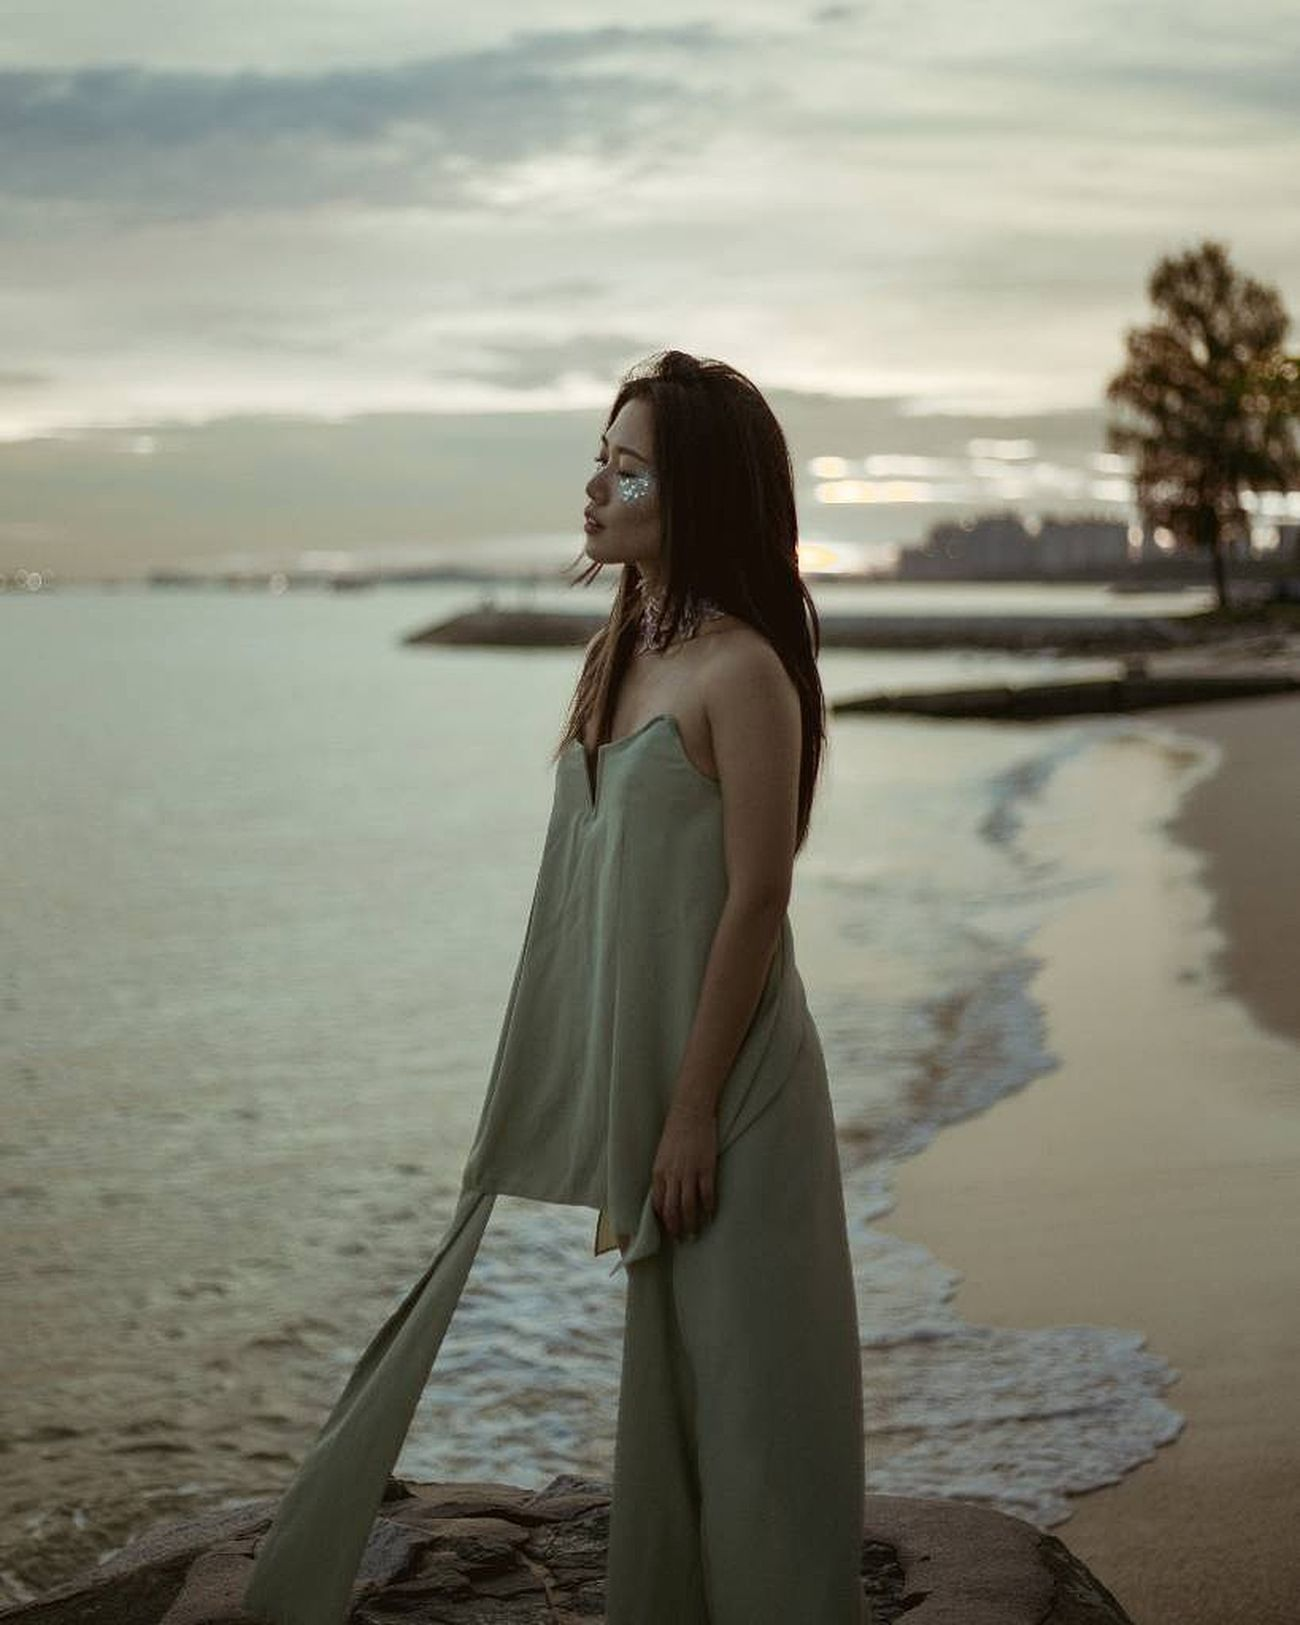 Andrea by the sea Sea One Woman Only Long Hair Beach Nature Photography Water_collection Nature Natural Light Portrait Women Of EyeEm Beautiful People Outdoors Beauty Moody Water Portrait Photography Singapore